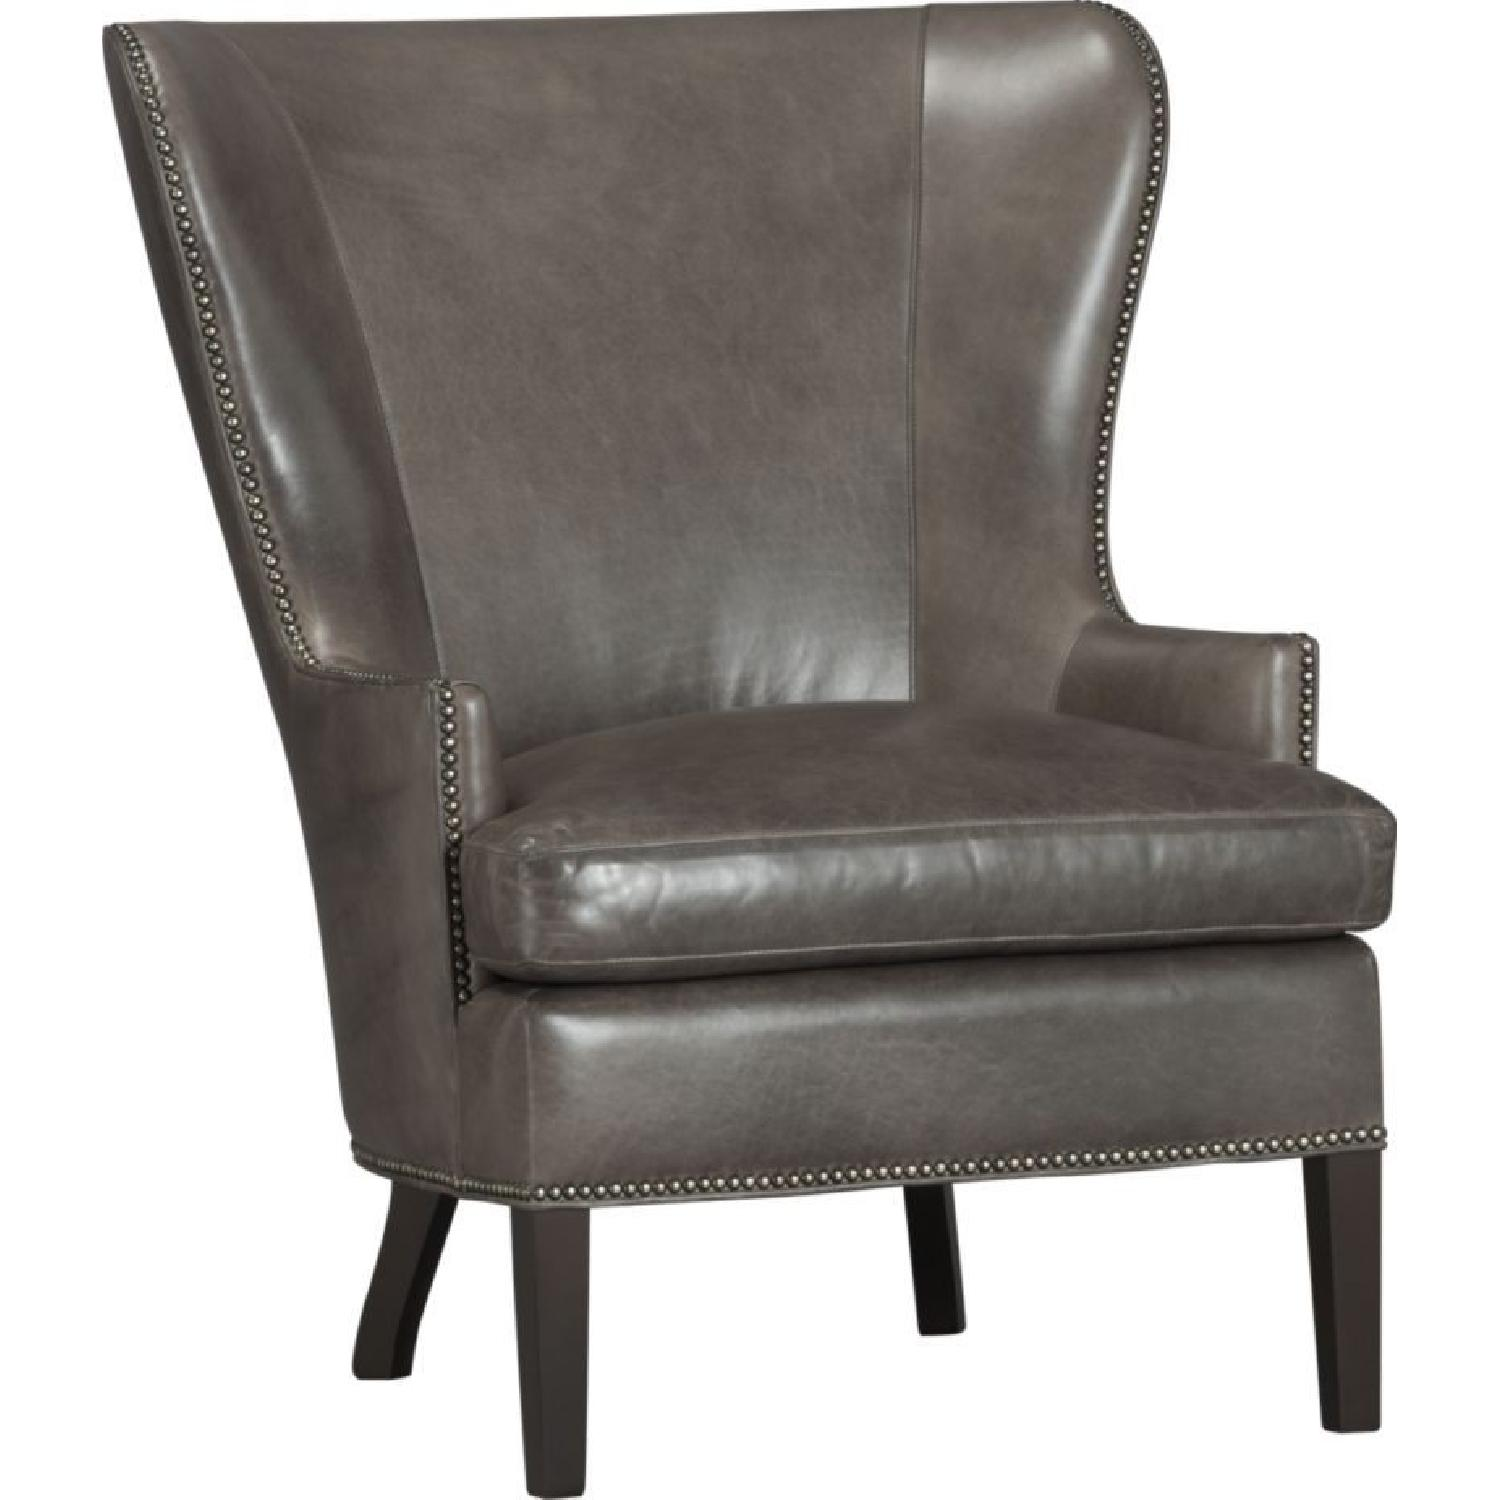 Crate & Barrel Dylan Leather Armchair w/ Metal Studs-4